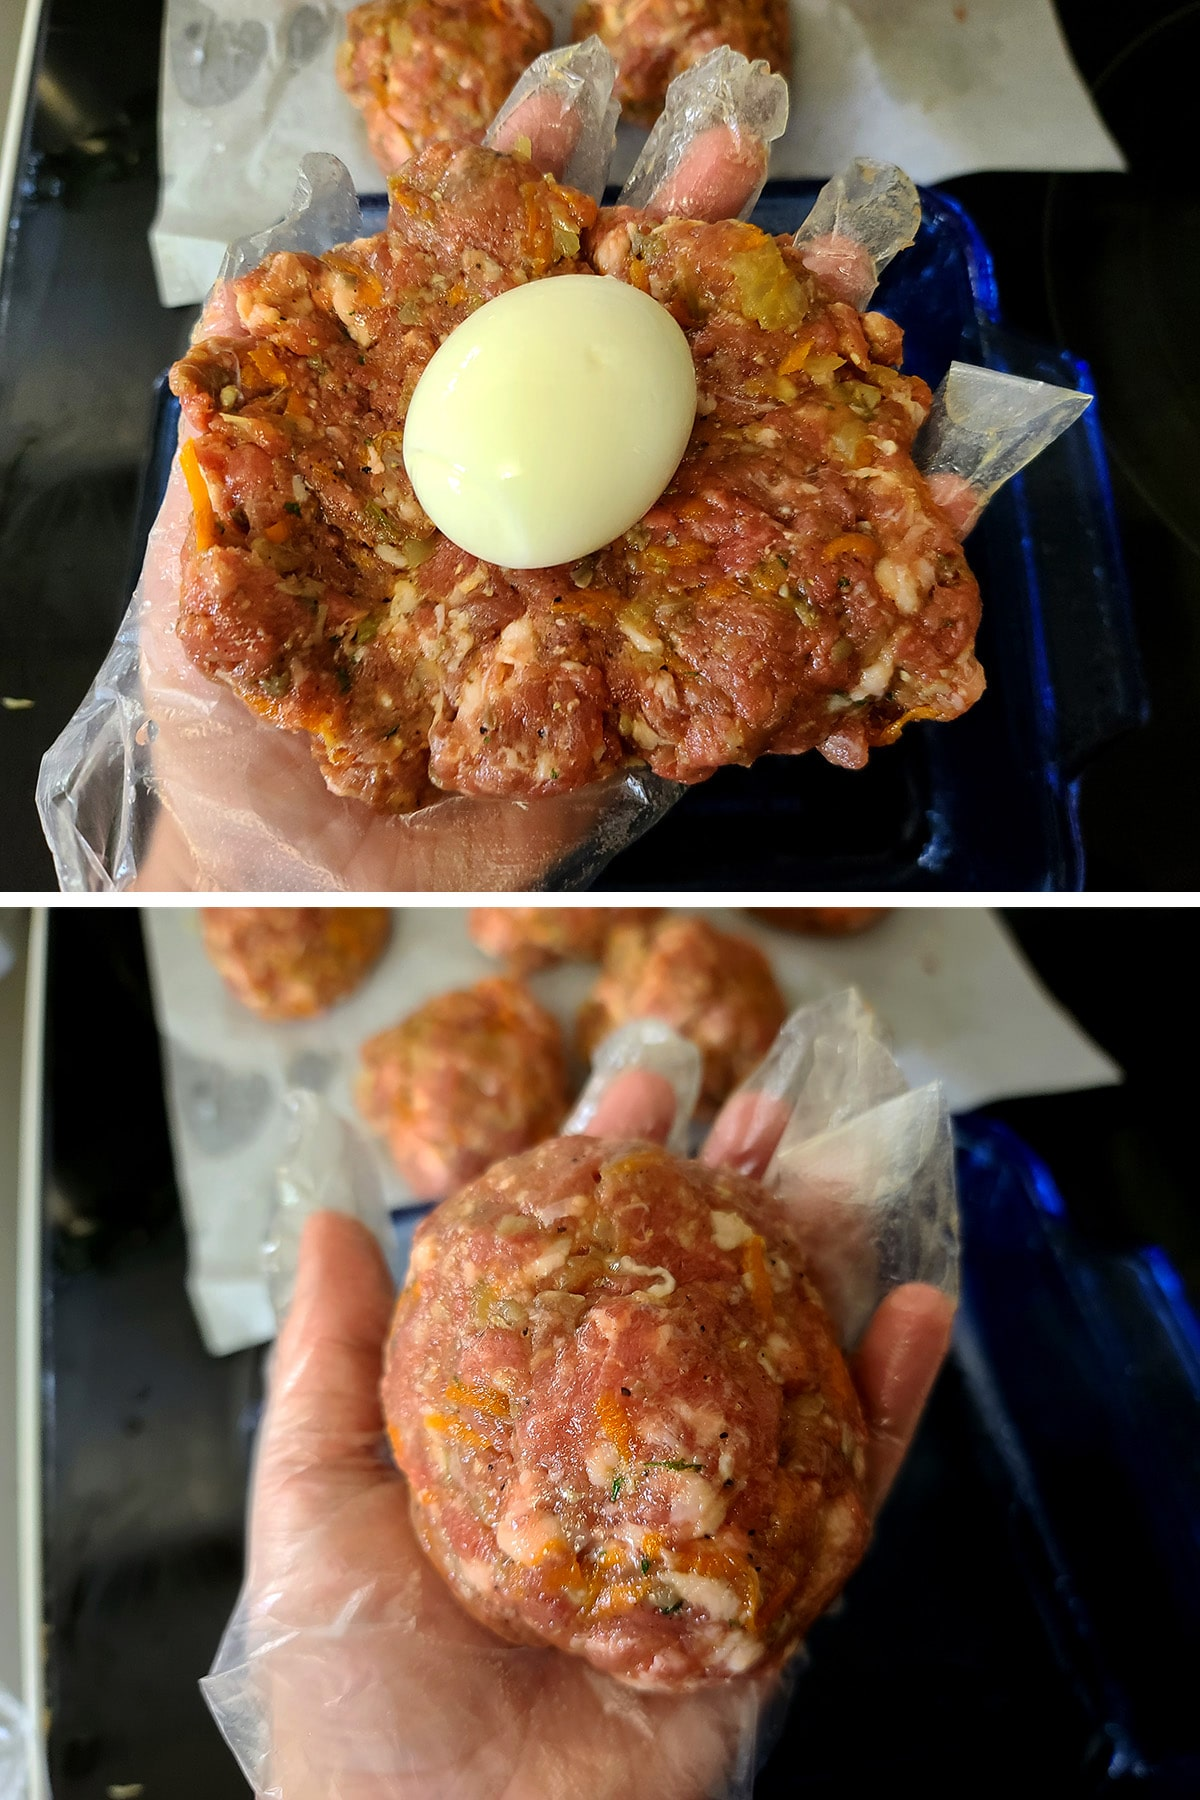 A hand holds a patty of meat mixture with peeled hardboiled egg in the middle, then the finished Scotch Egg.